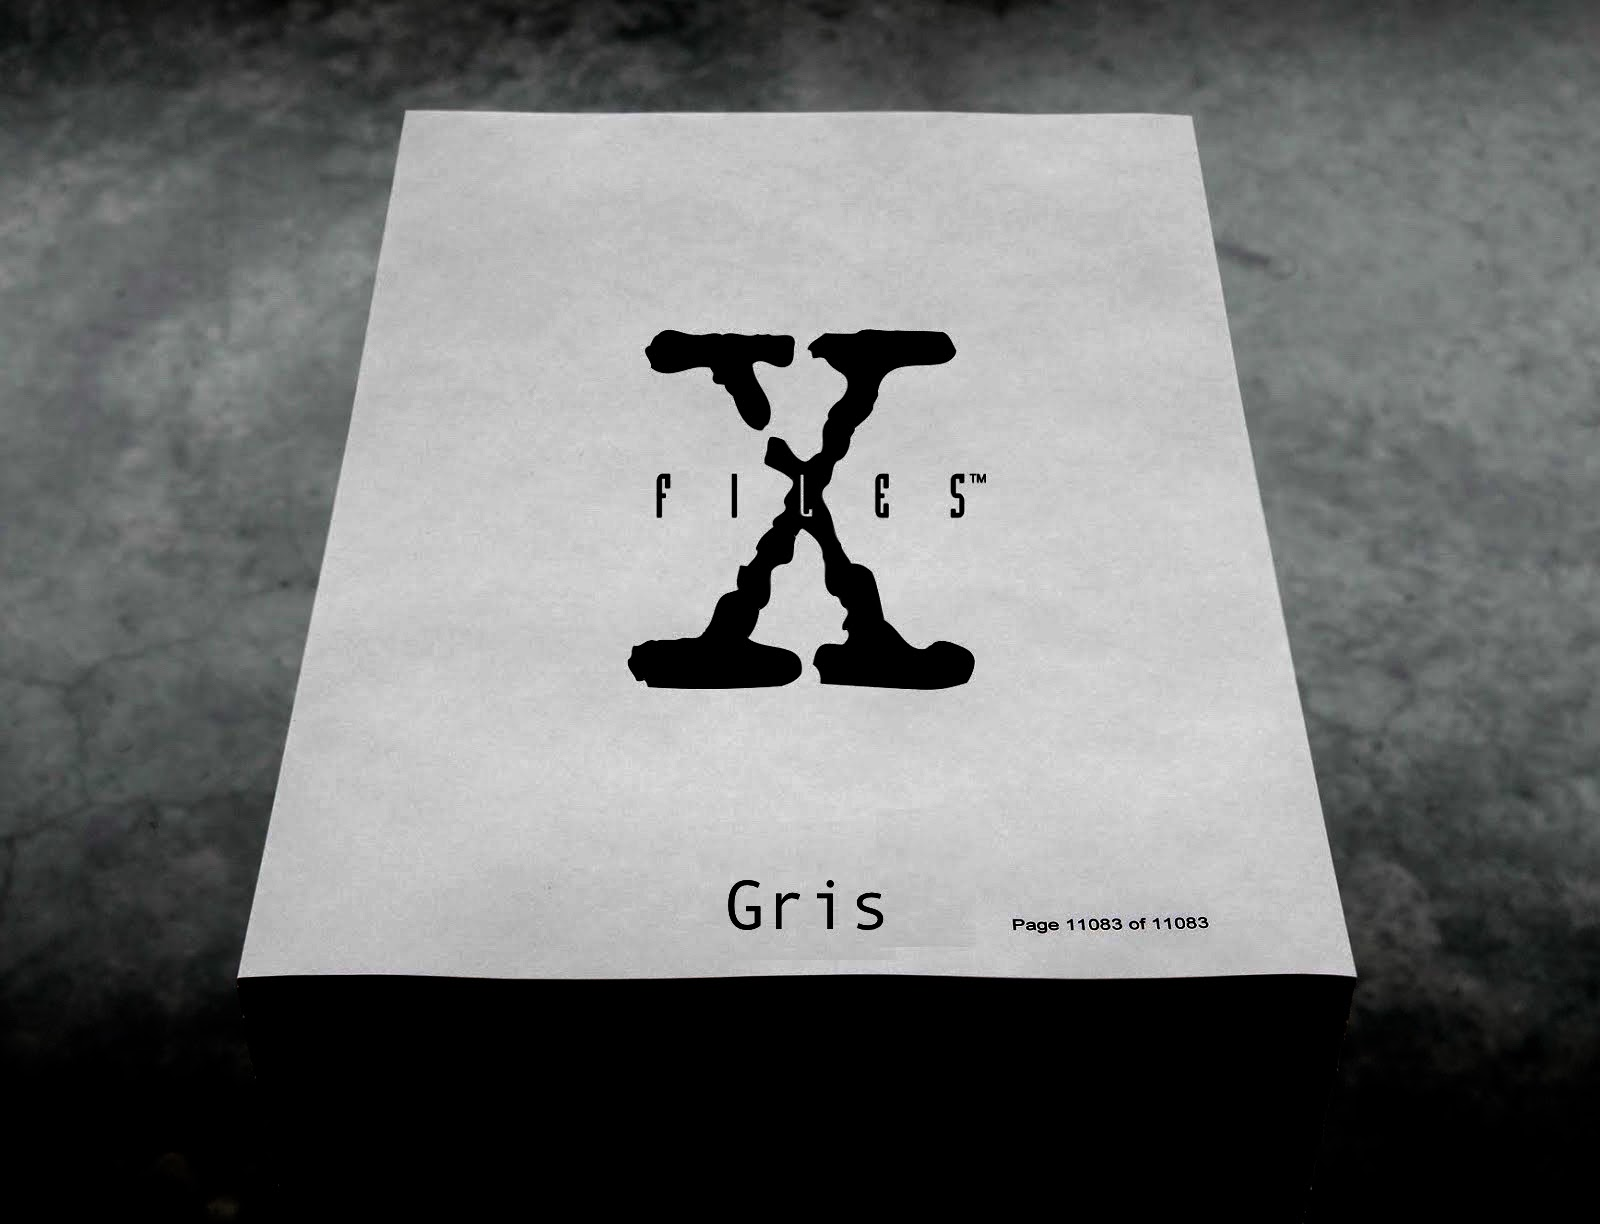 2018 TEASER: The X-Files Gris